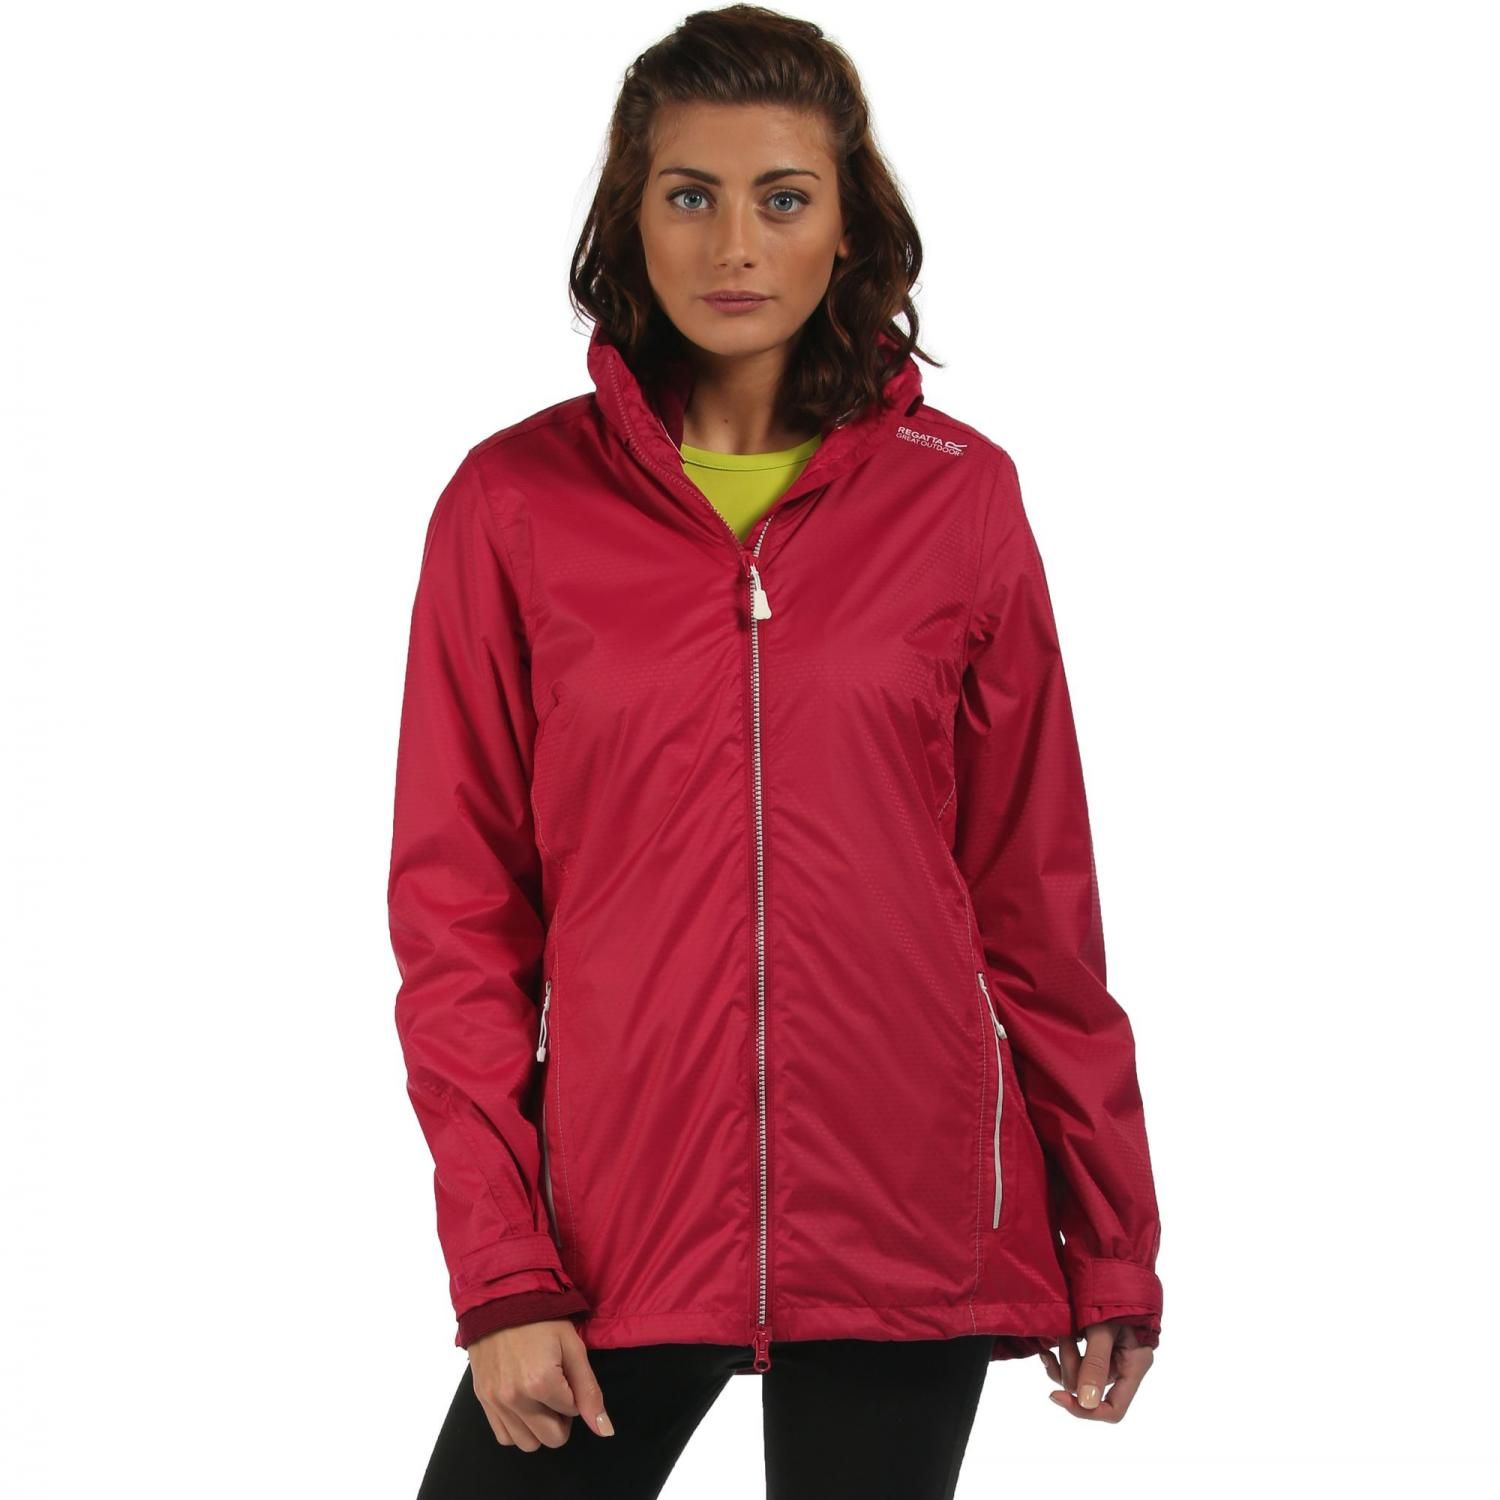 Alabama II 3 in 1 Jacket Dark Cerise